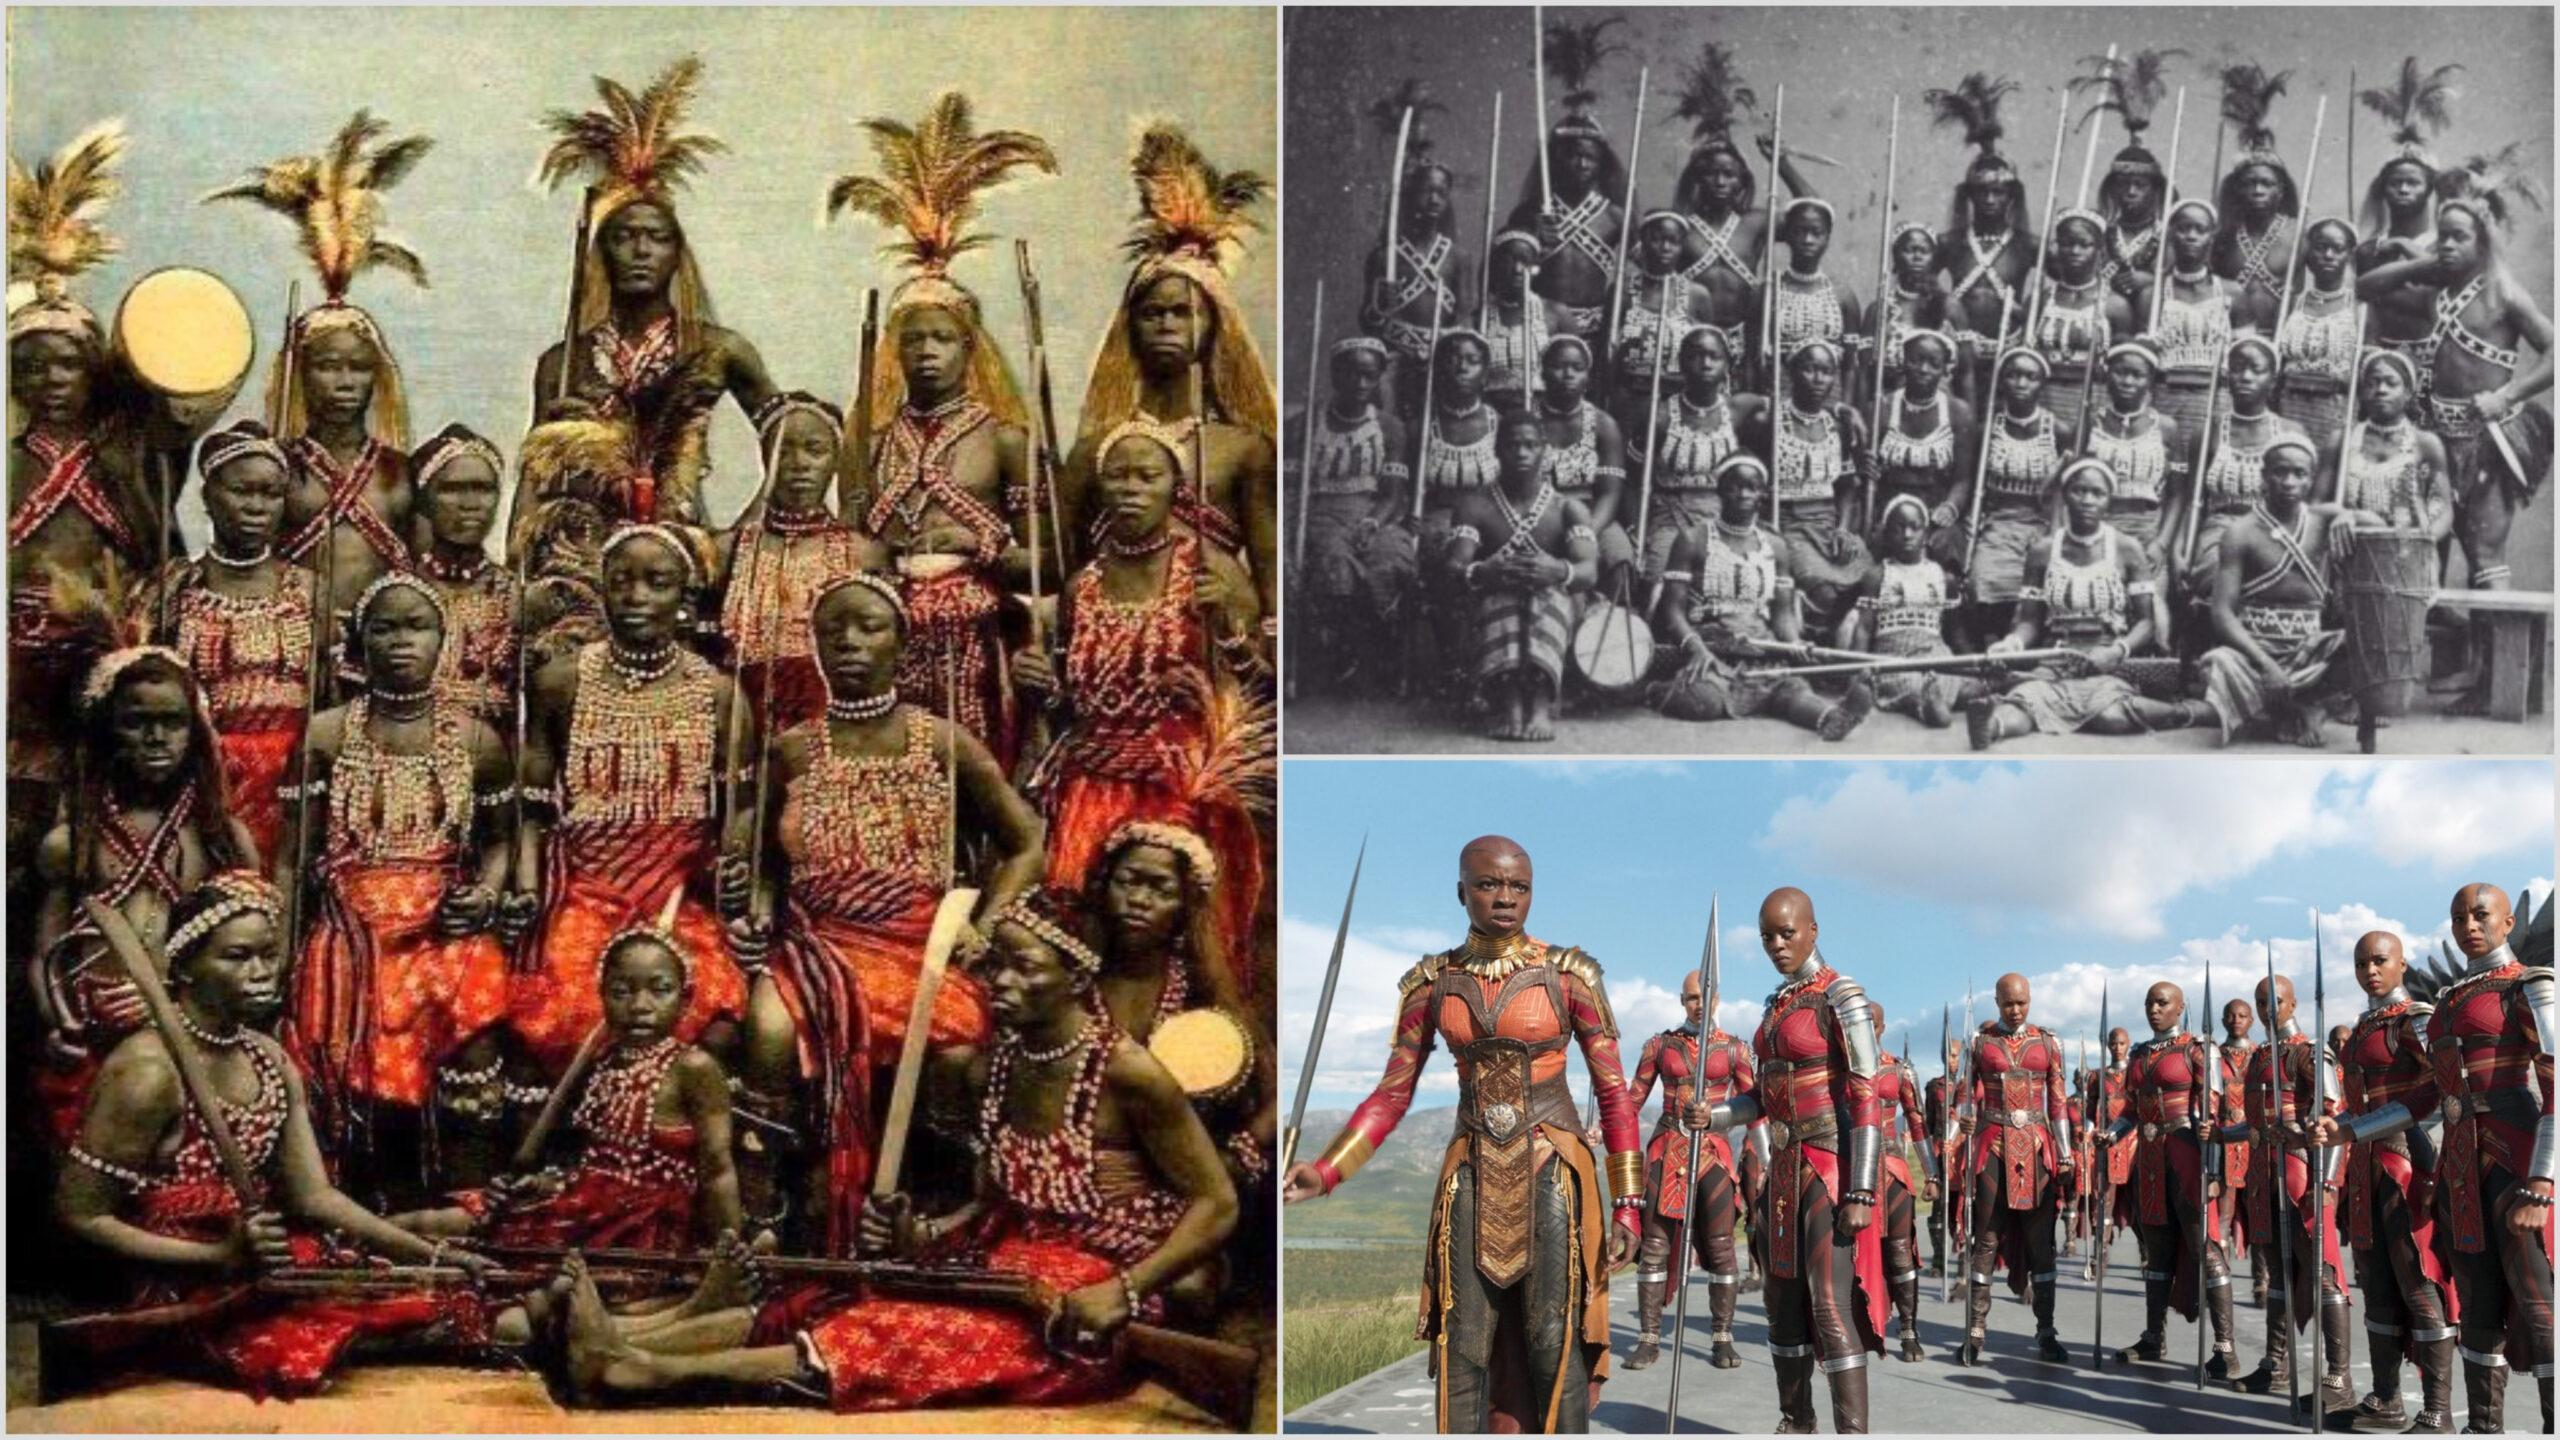 African women warriors from Dahomey Kingdom (17th century) that inspired Black Panther